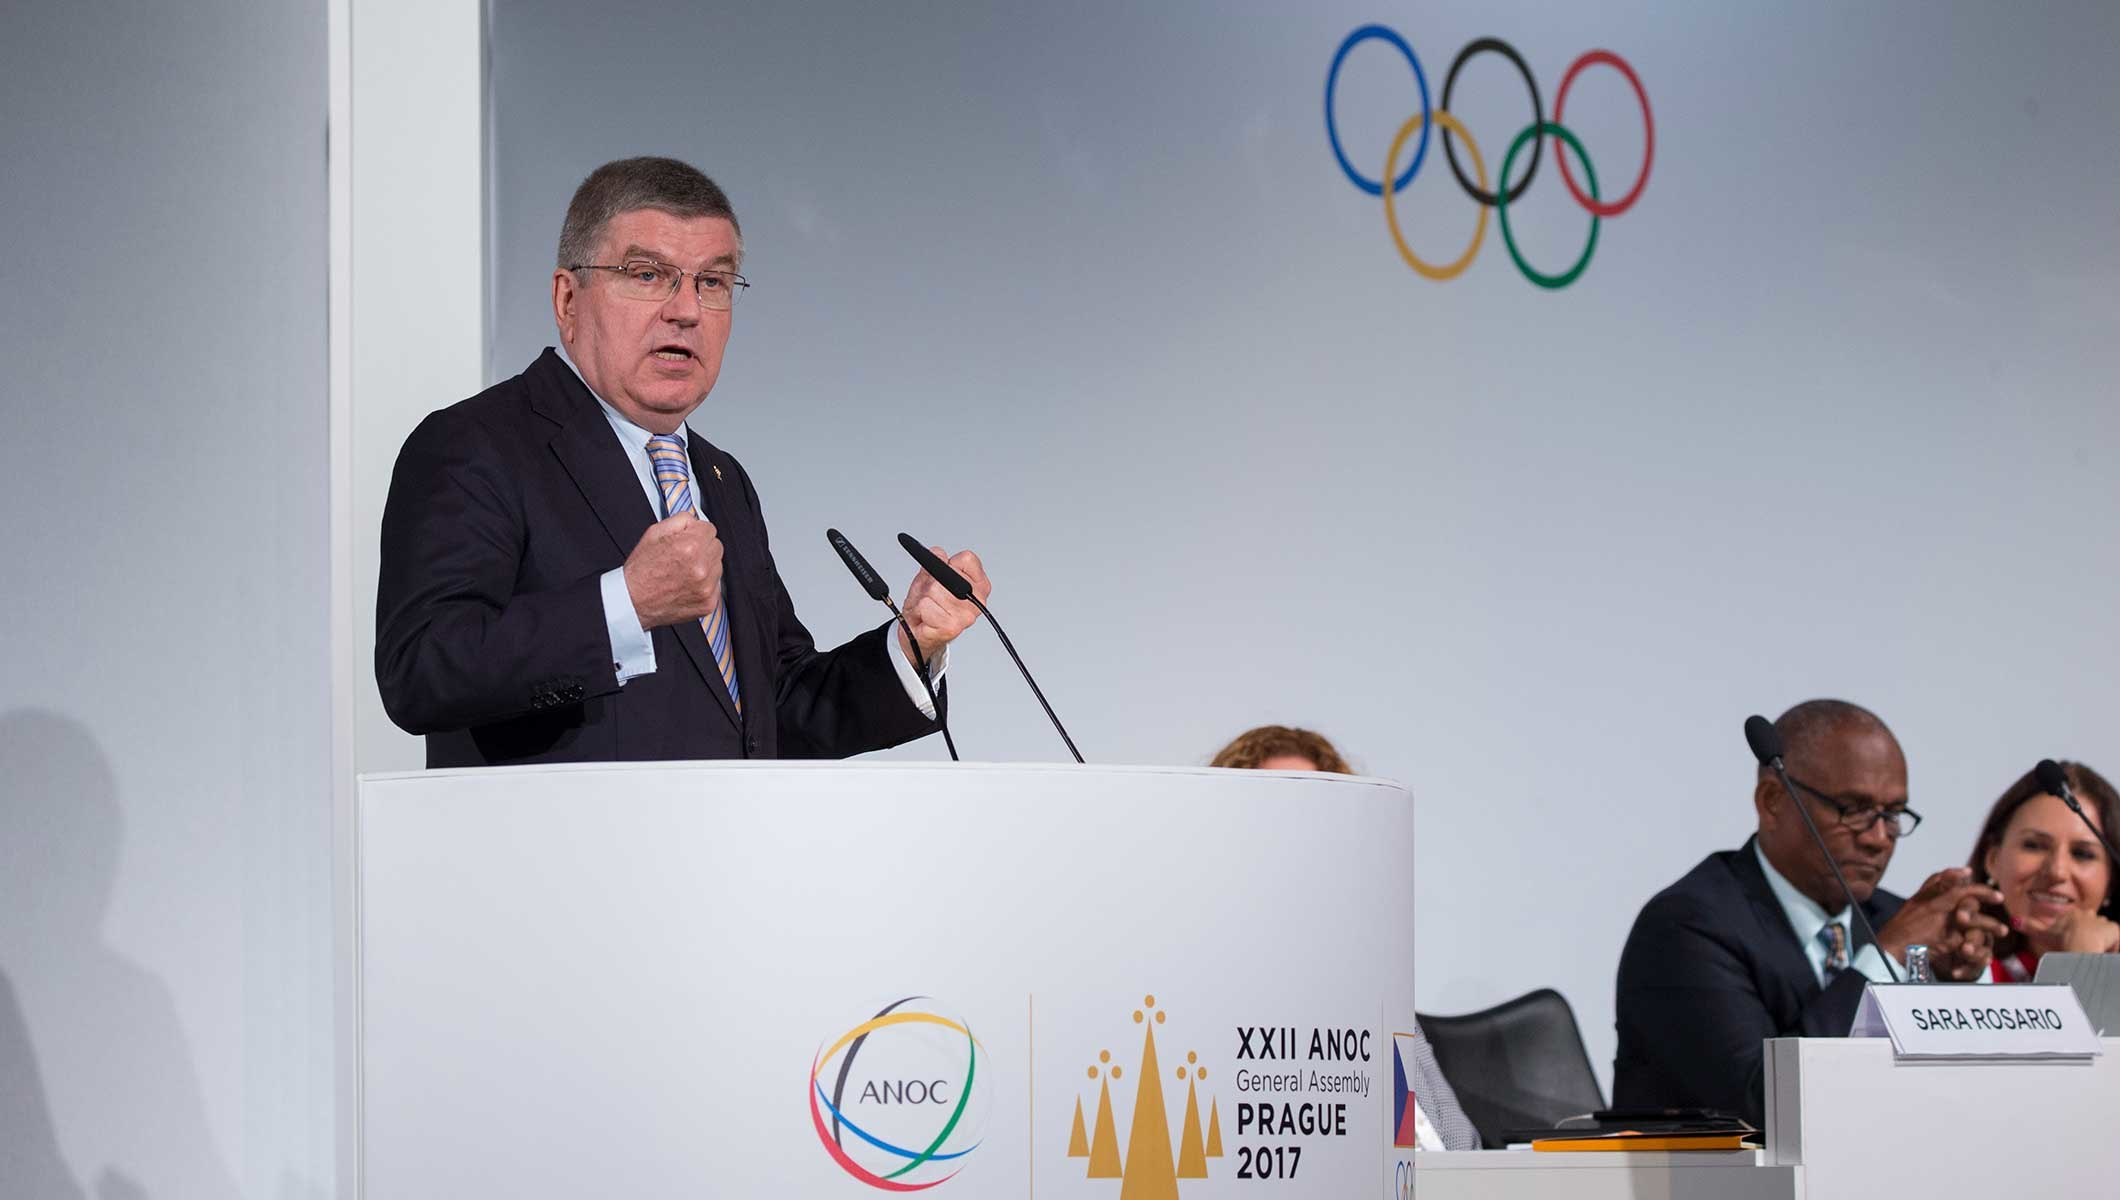 IOC PRESIDENT ADDRESSES ANOC GENERAL ASSEMBLY ABOUT CHALLENGES AND OPPORTUNITIES FACING THE OLYMPIC MOVEMENT